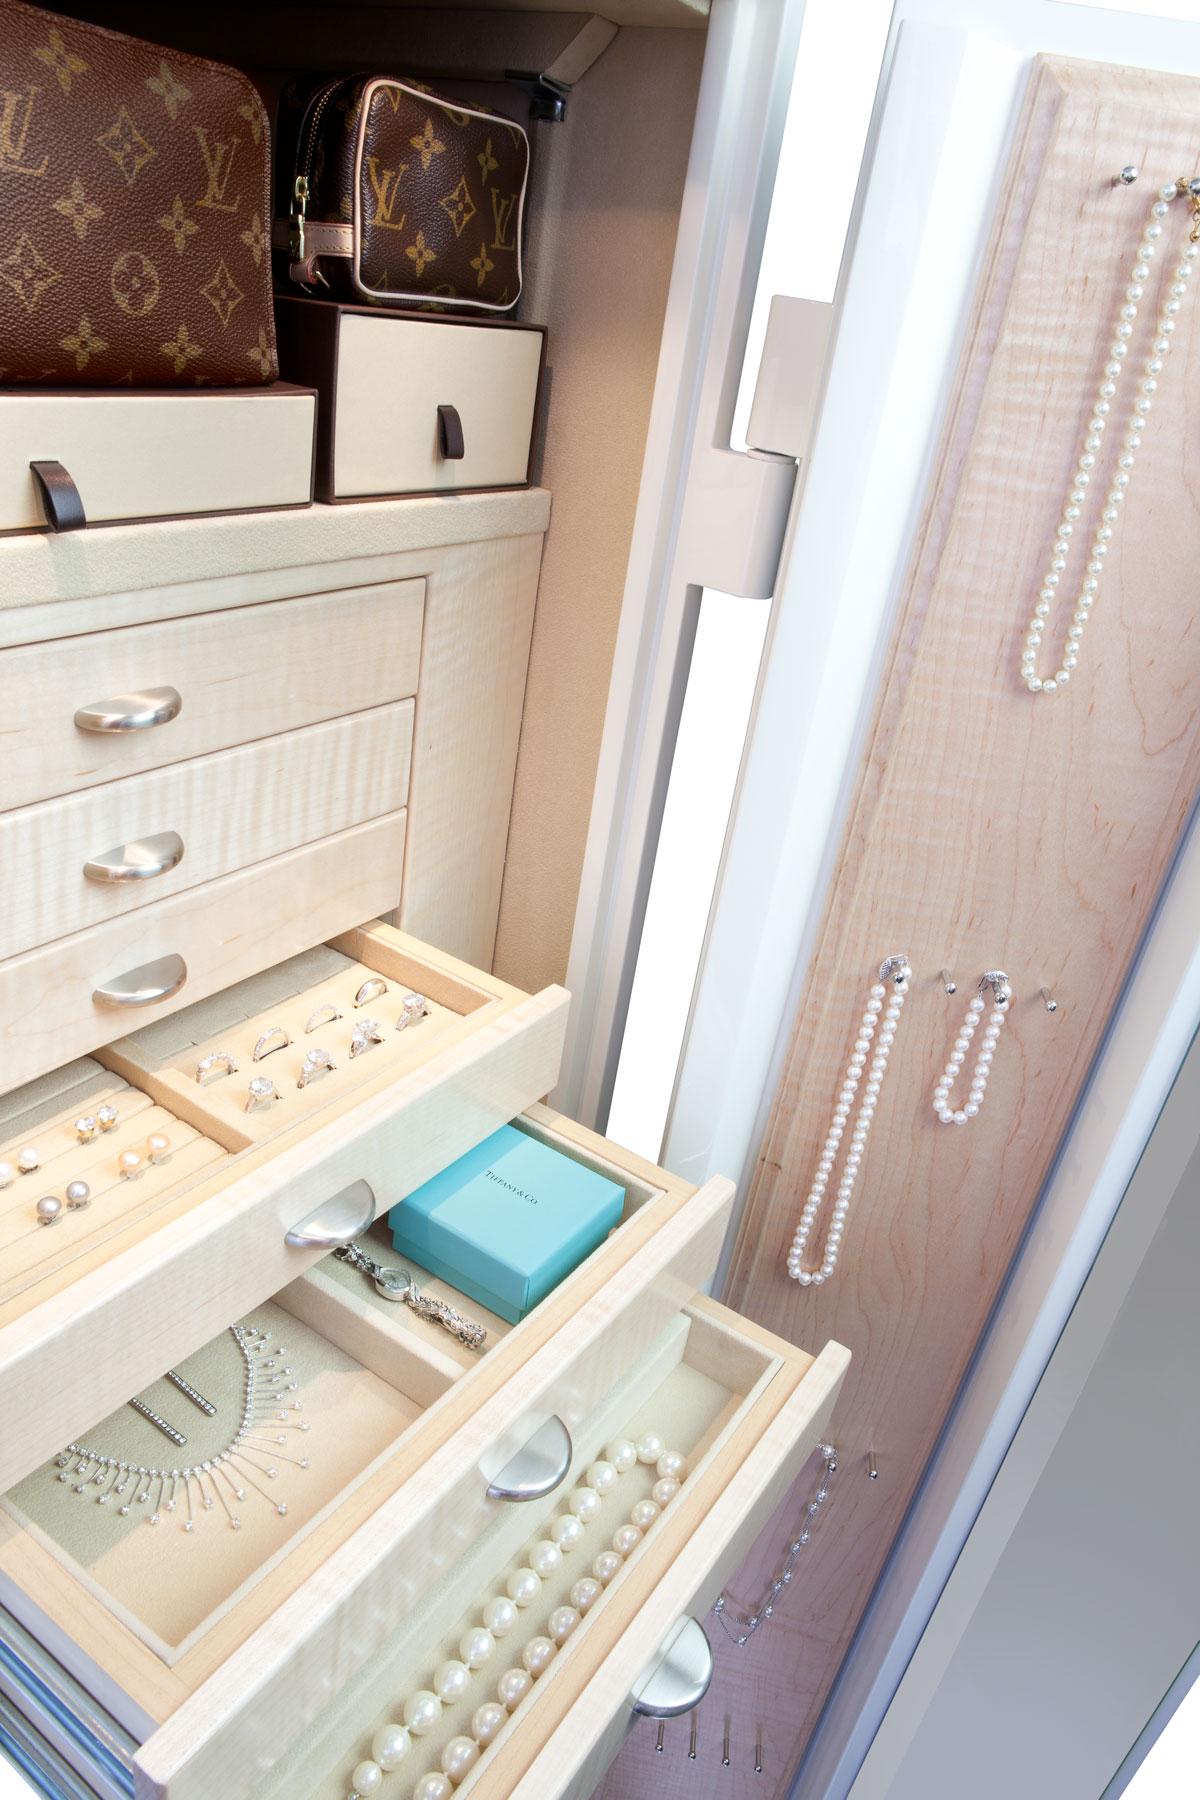 Jewelry Safe - Luxury Jewelry Safes - Brown Safe Manufacturing, Inc